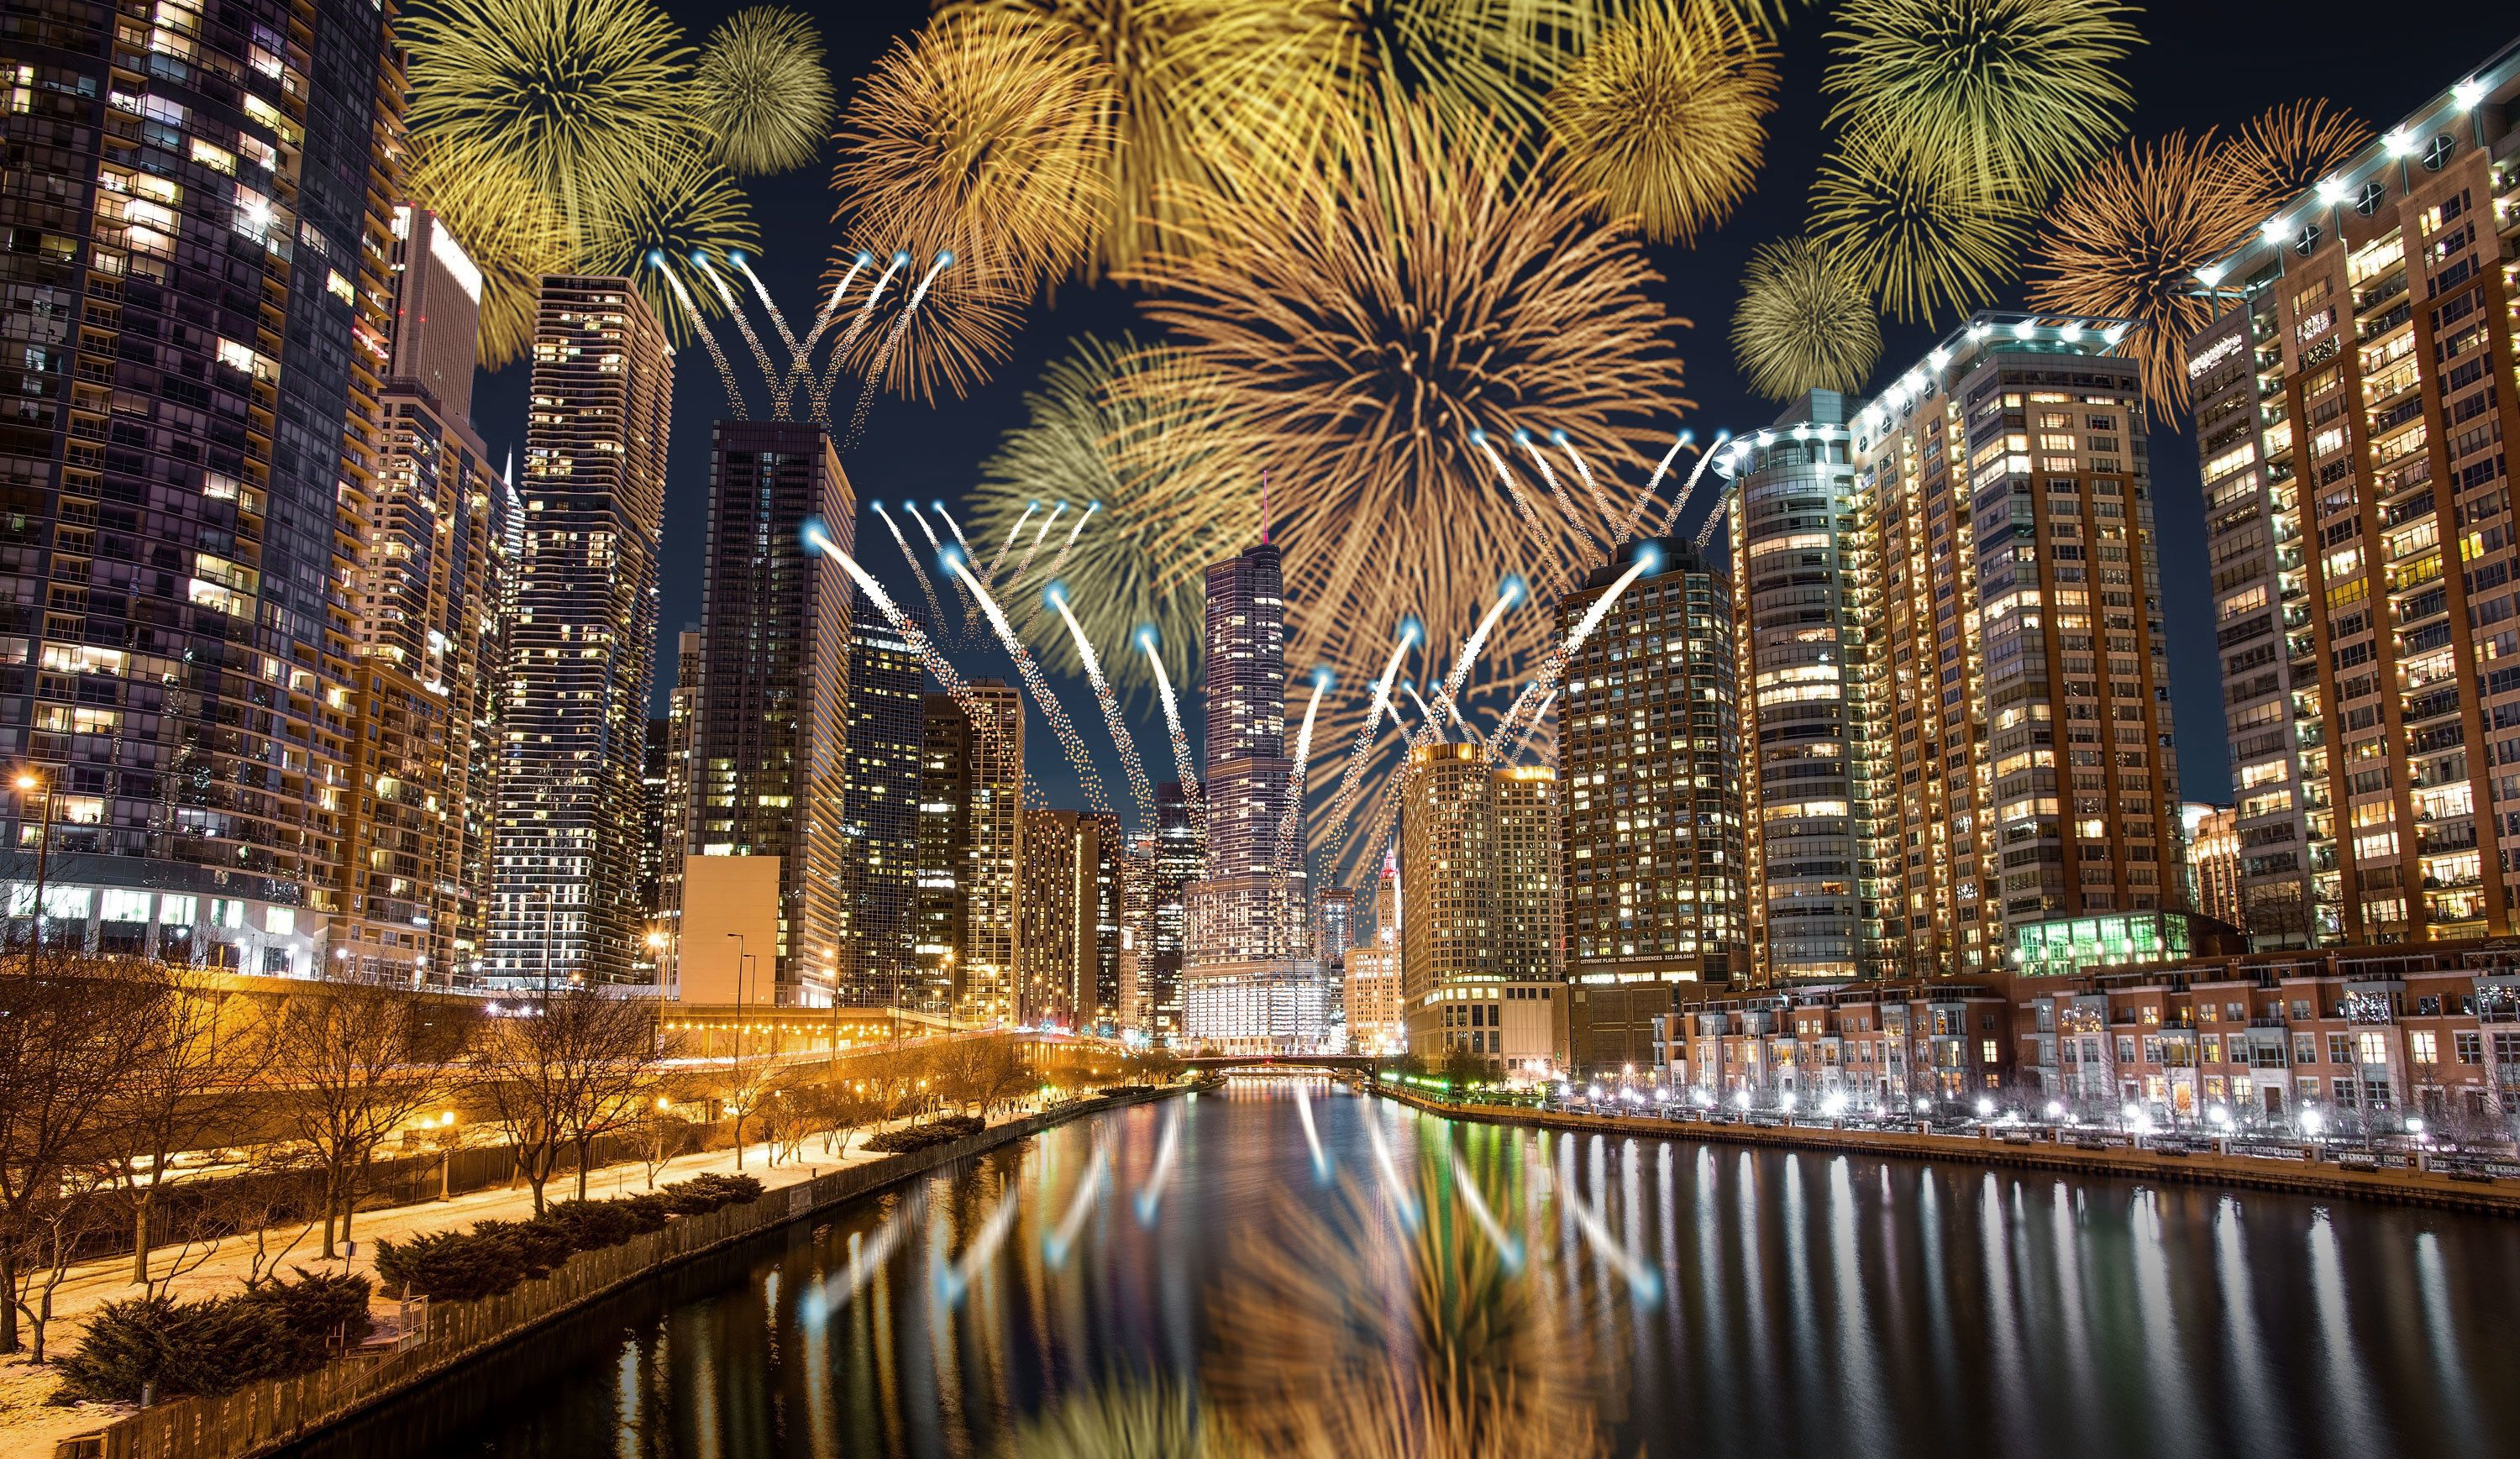 The World S Most Exciting New Year S Eve Celebrations New Years Eve Chicago New Years Eve Fireworks New Years Eve Events